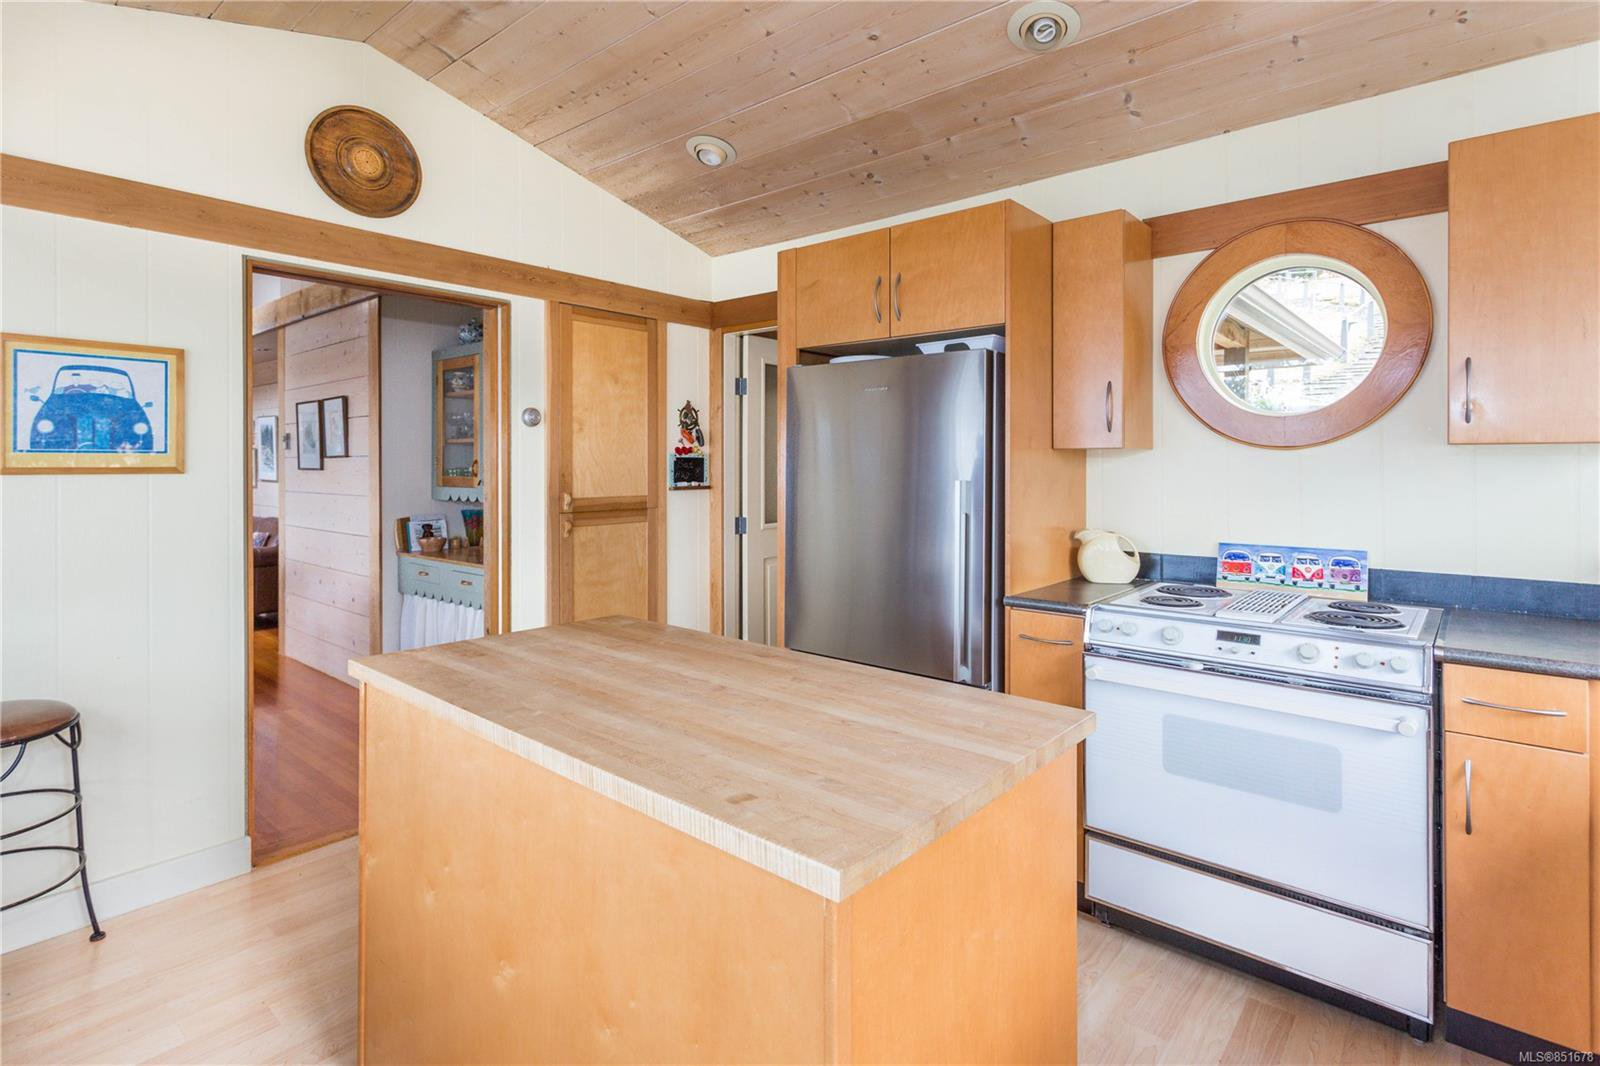 Photo 8: Photos: 262 Forbes Dr in : Isl Thetis Island House for sale (Islands)  : MLS®# 851678